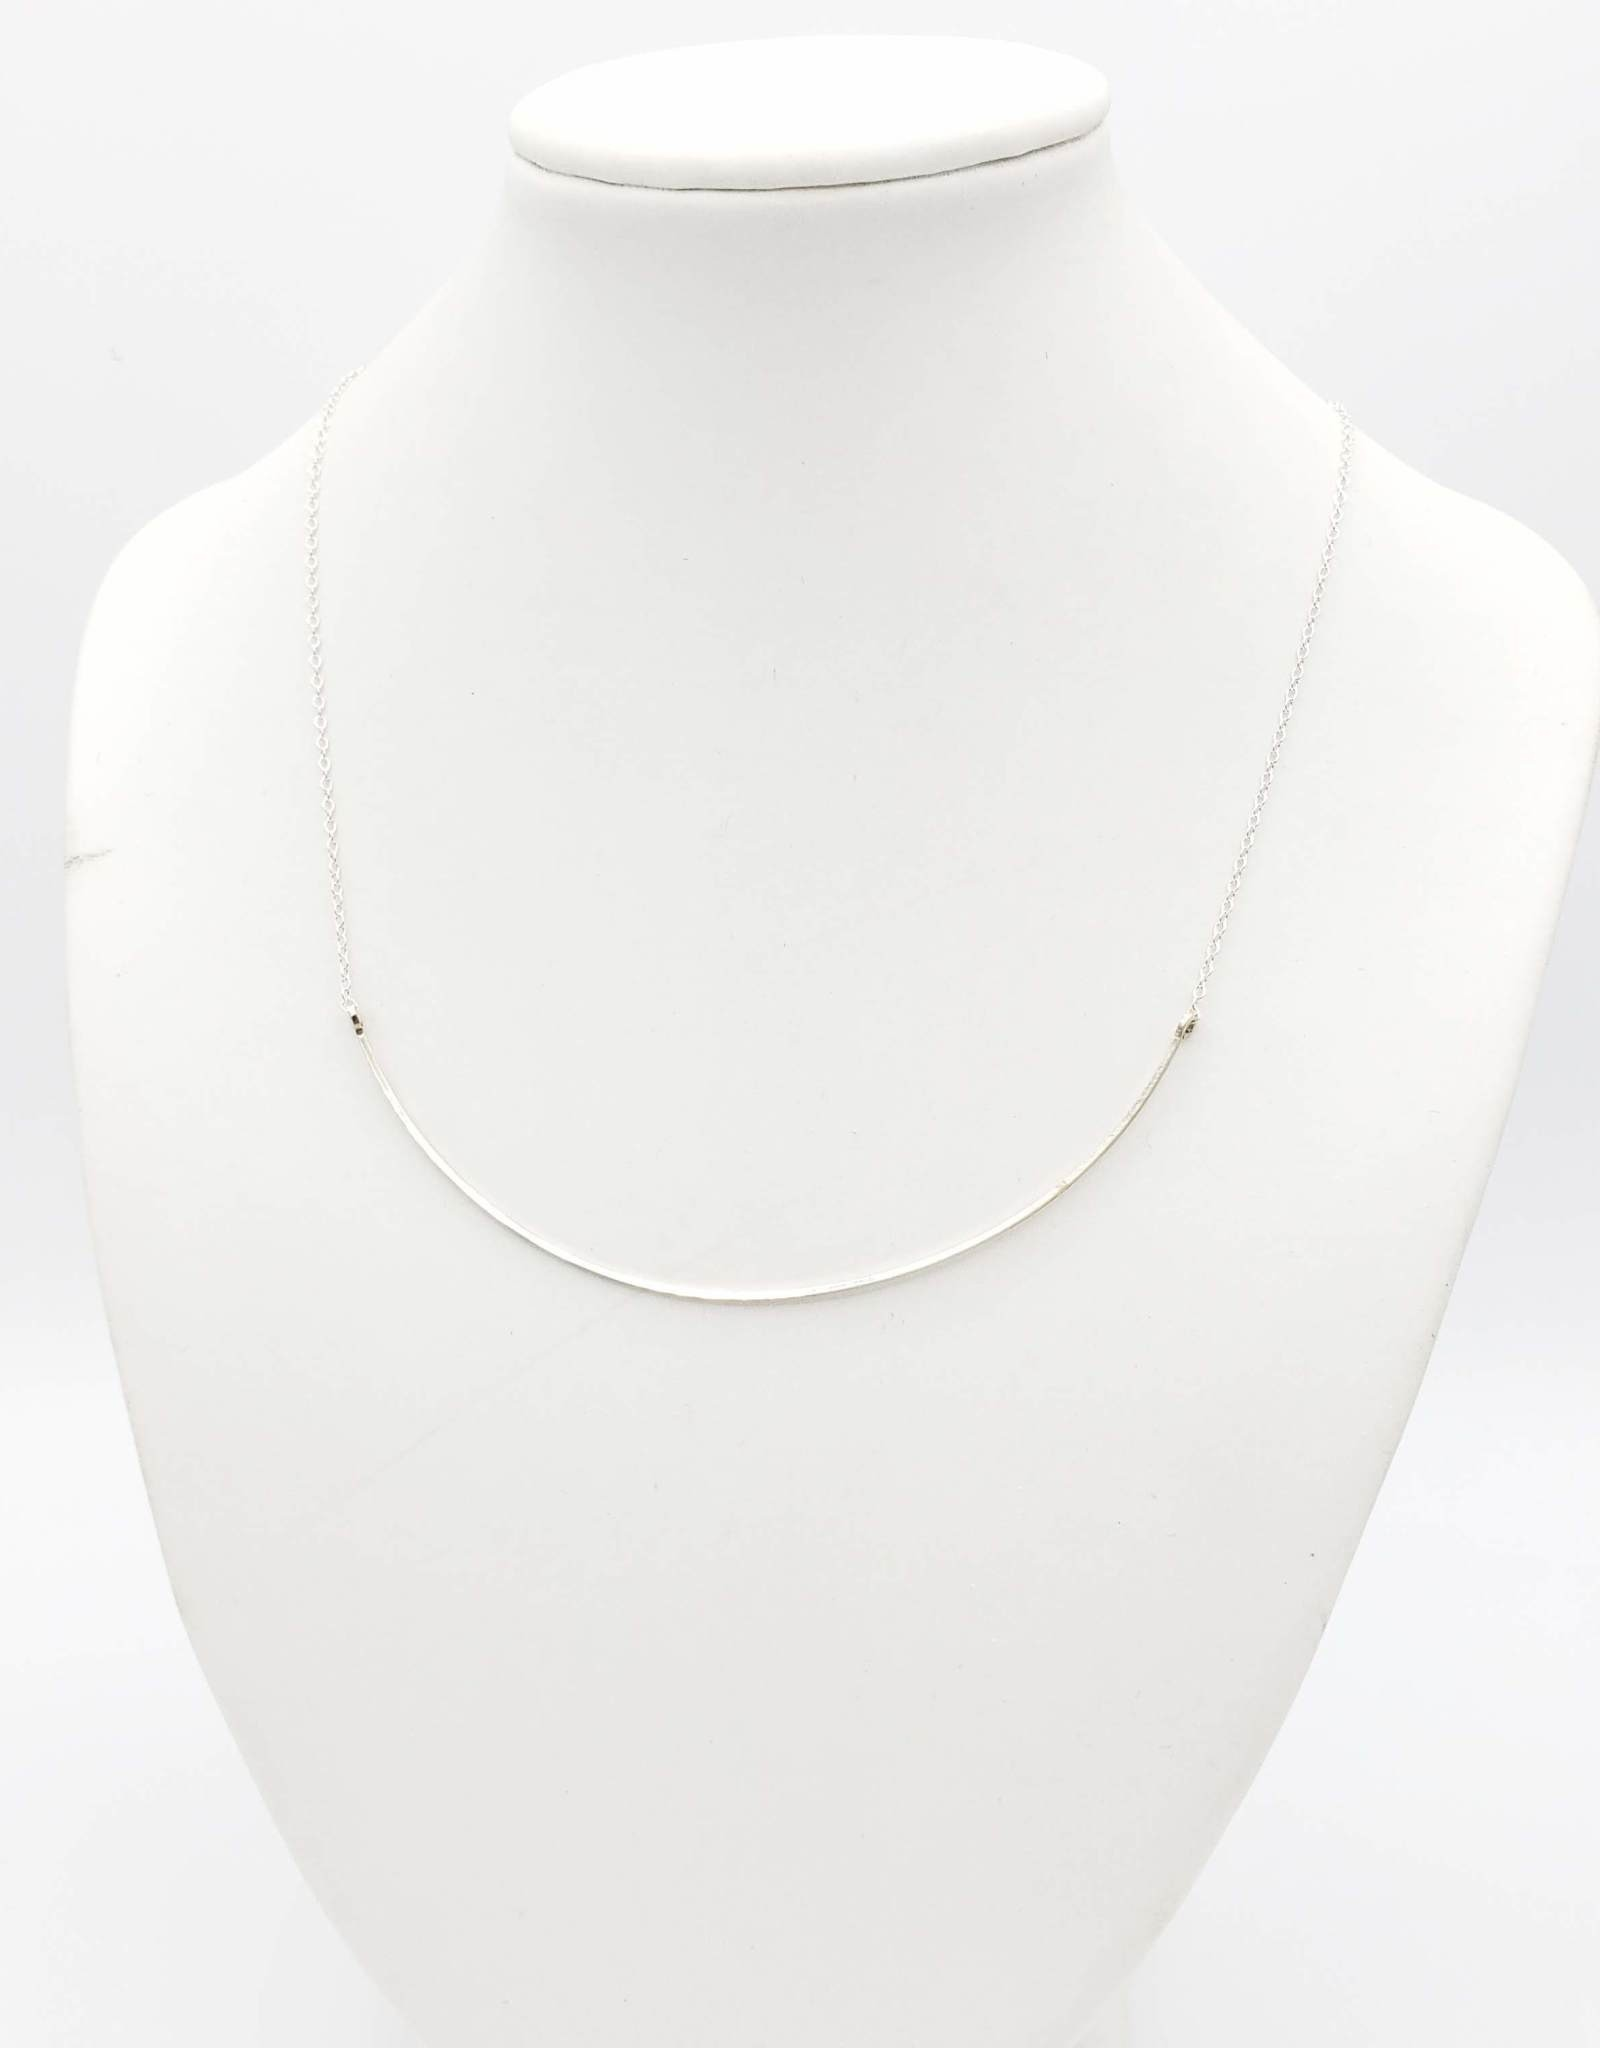 Annika Inez Single Large Curved Wire Necklace - Sterling Silver